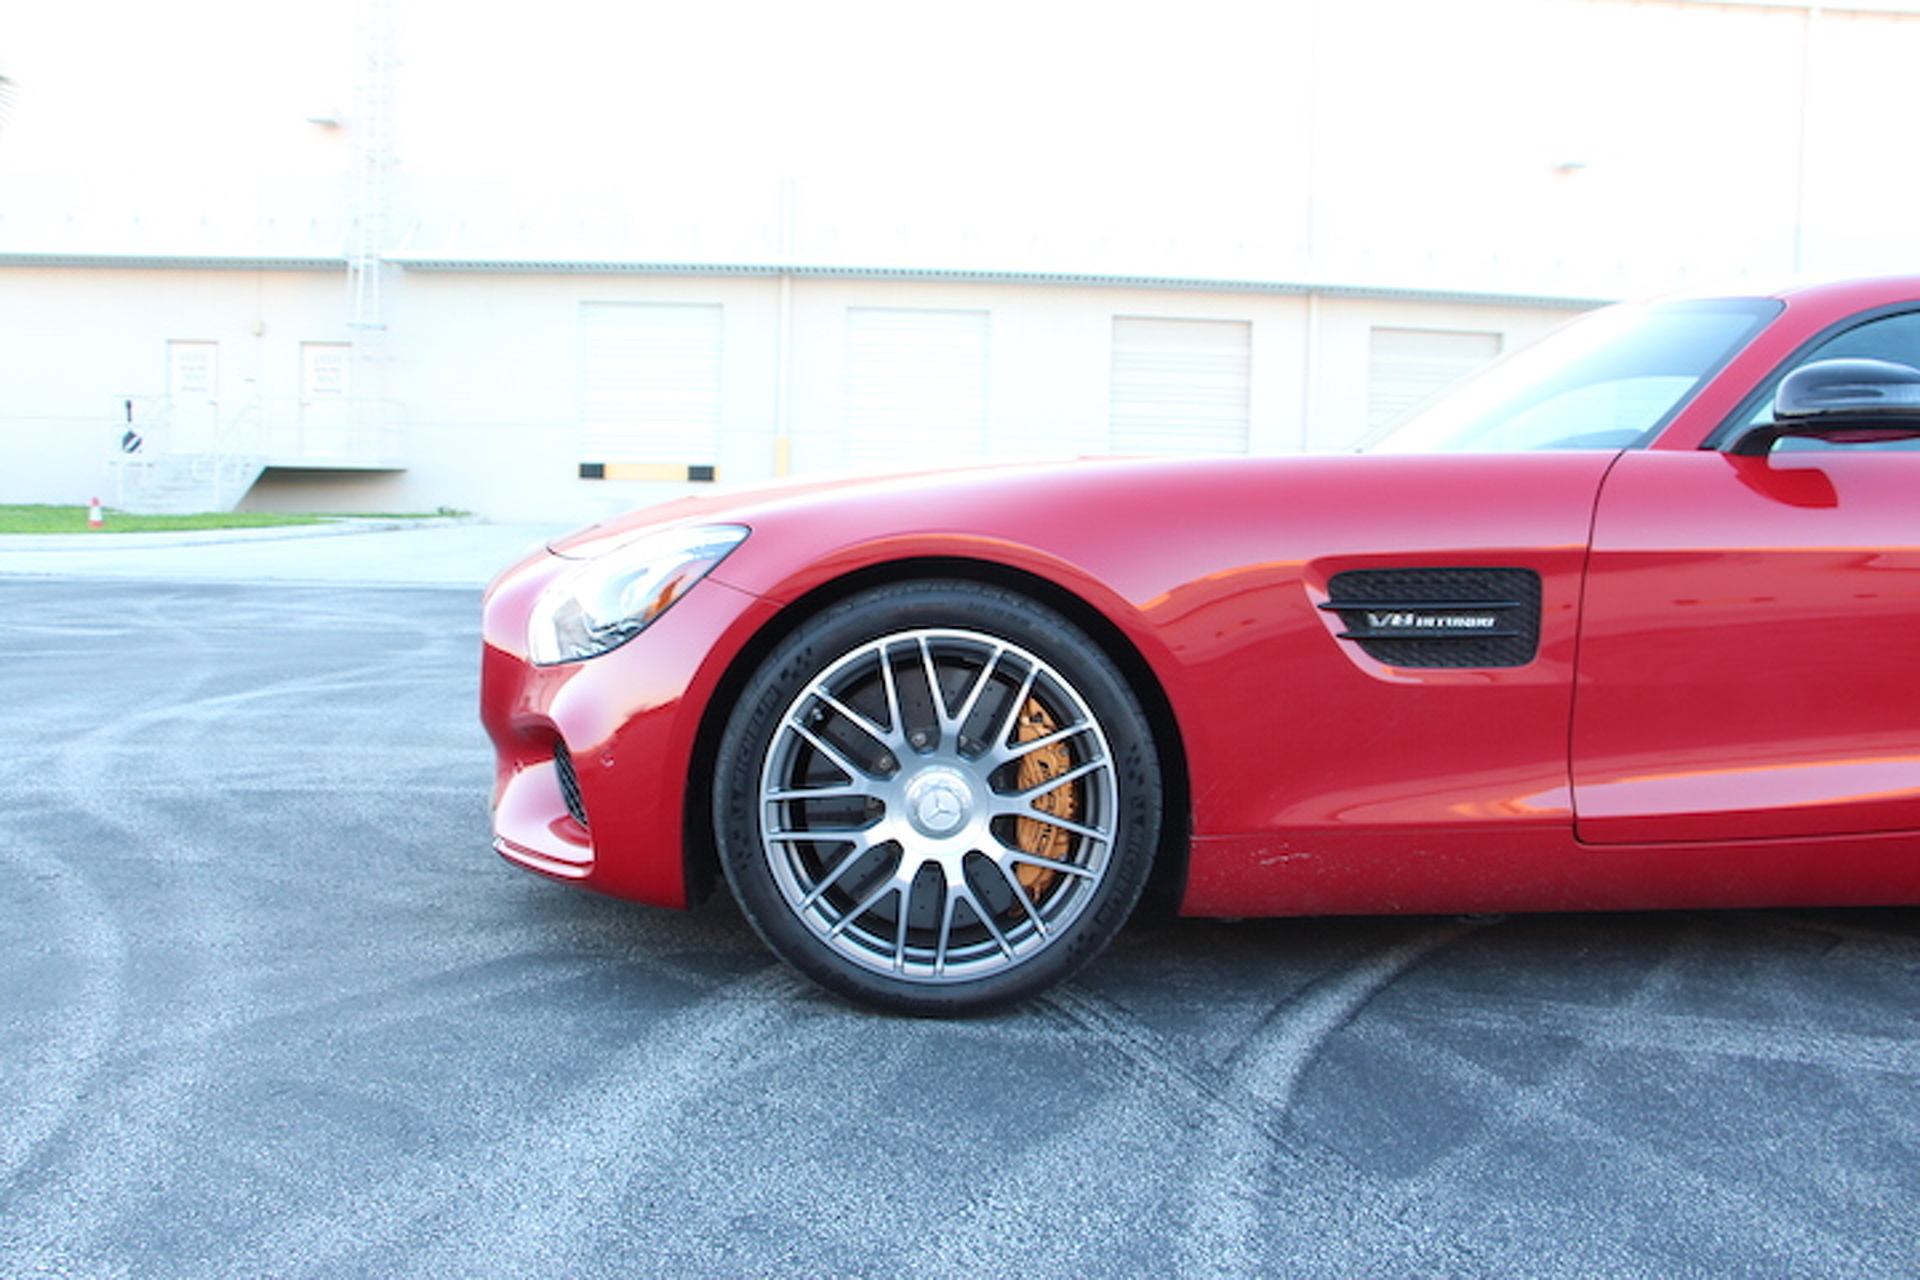 The Mercedes Amg Gt Should Come With A Heart Rate Monitor Review